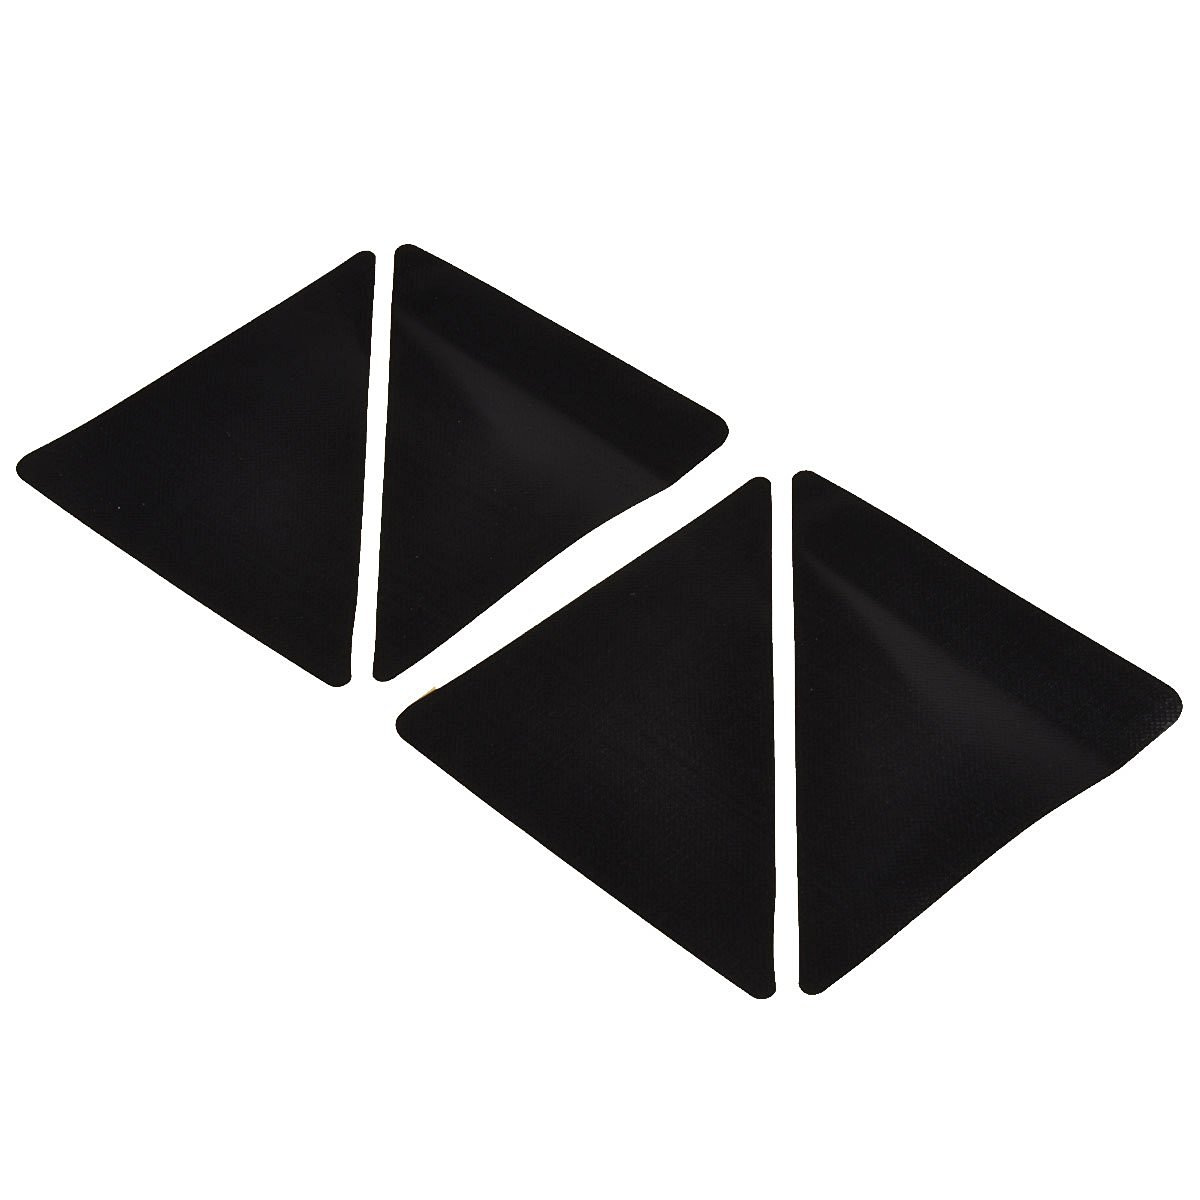 4 Pcs/set 15*7.5cm Reusable -shaped Anti-skid Rubber Floor Carpet Mat Rug Gripper Stopper Tape Sticker (Black)